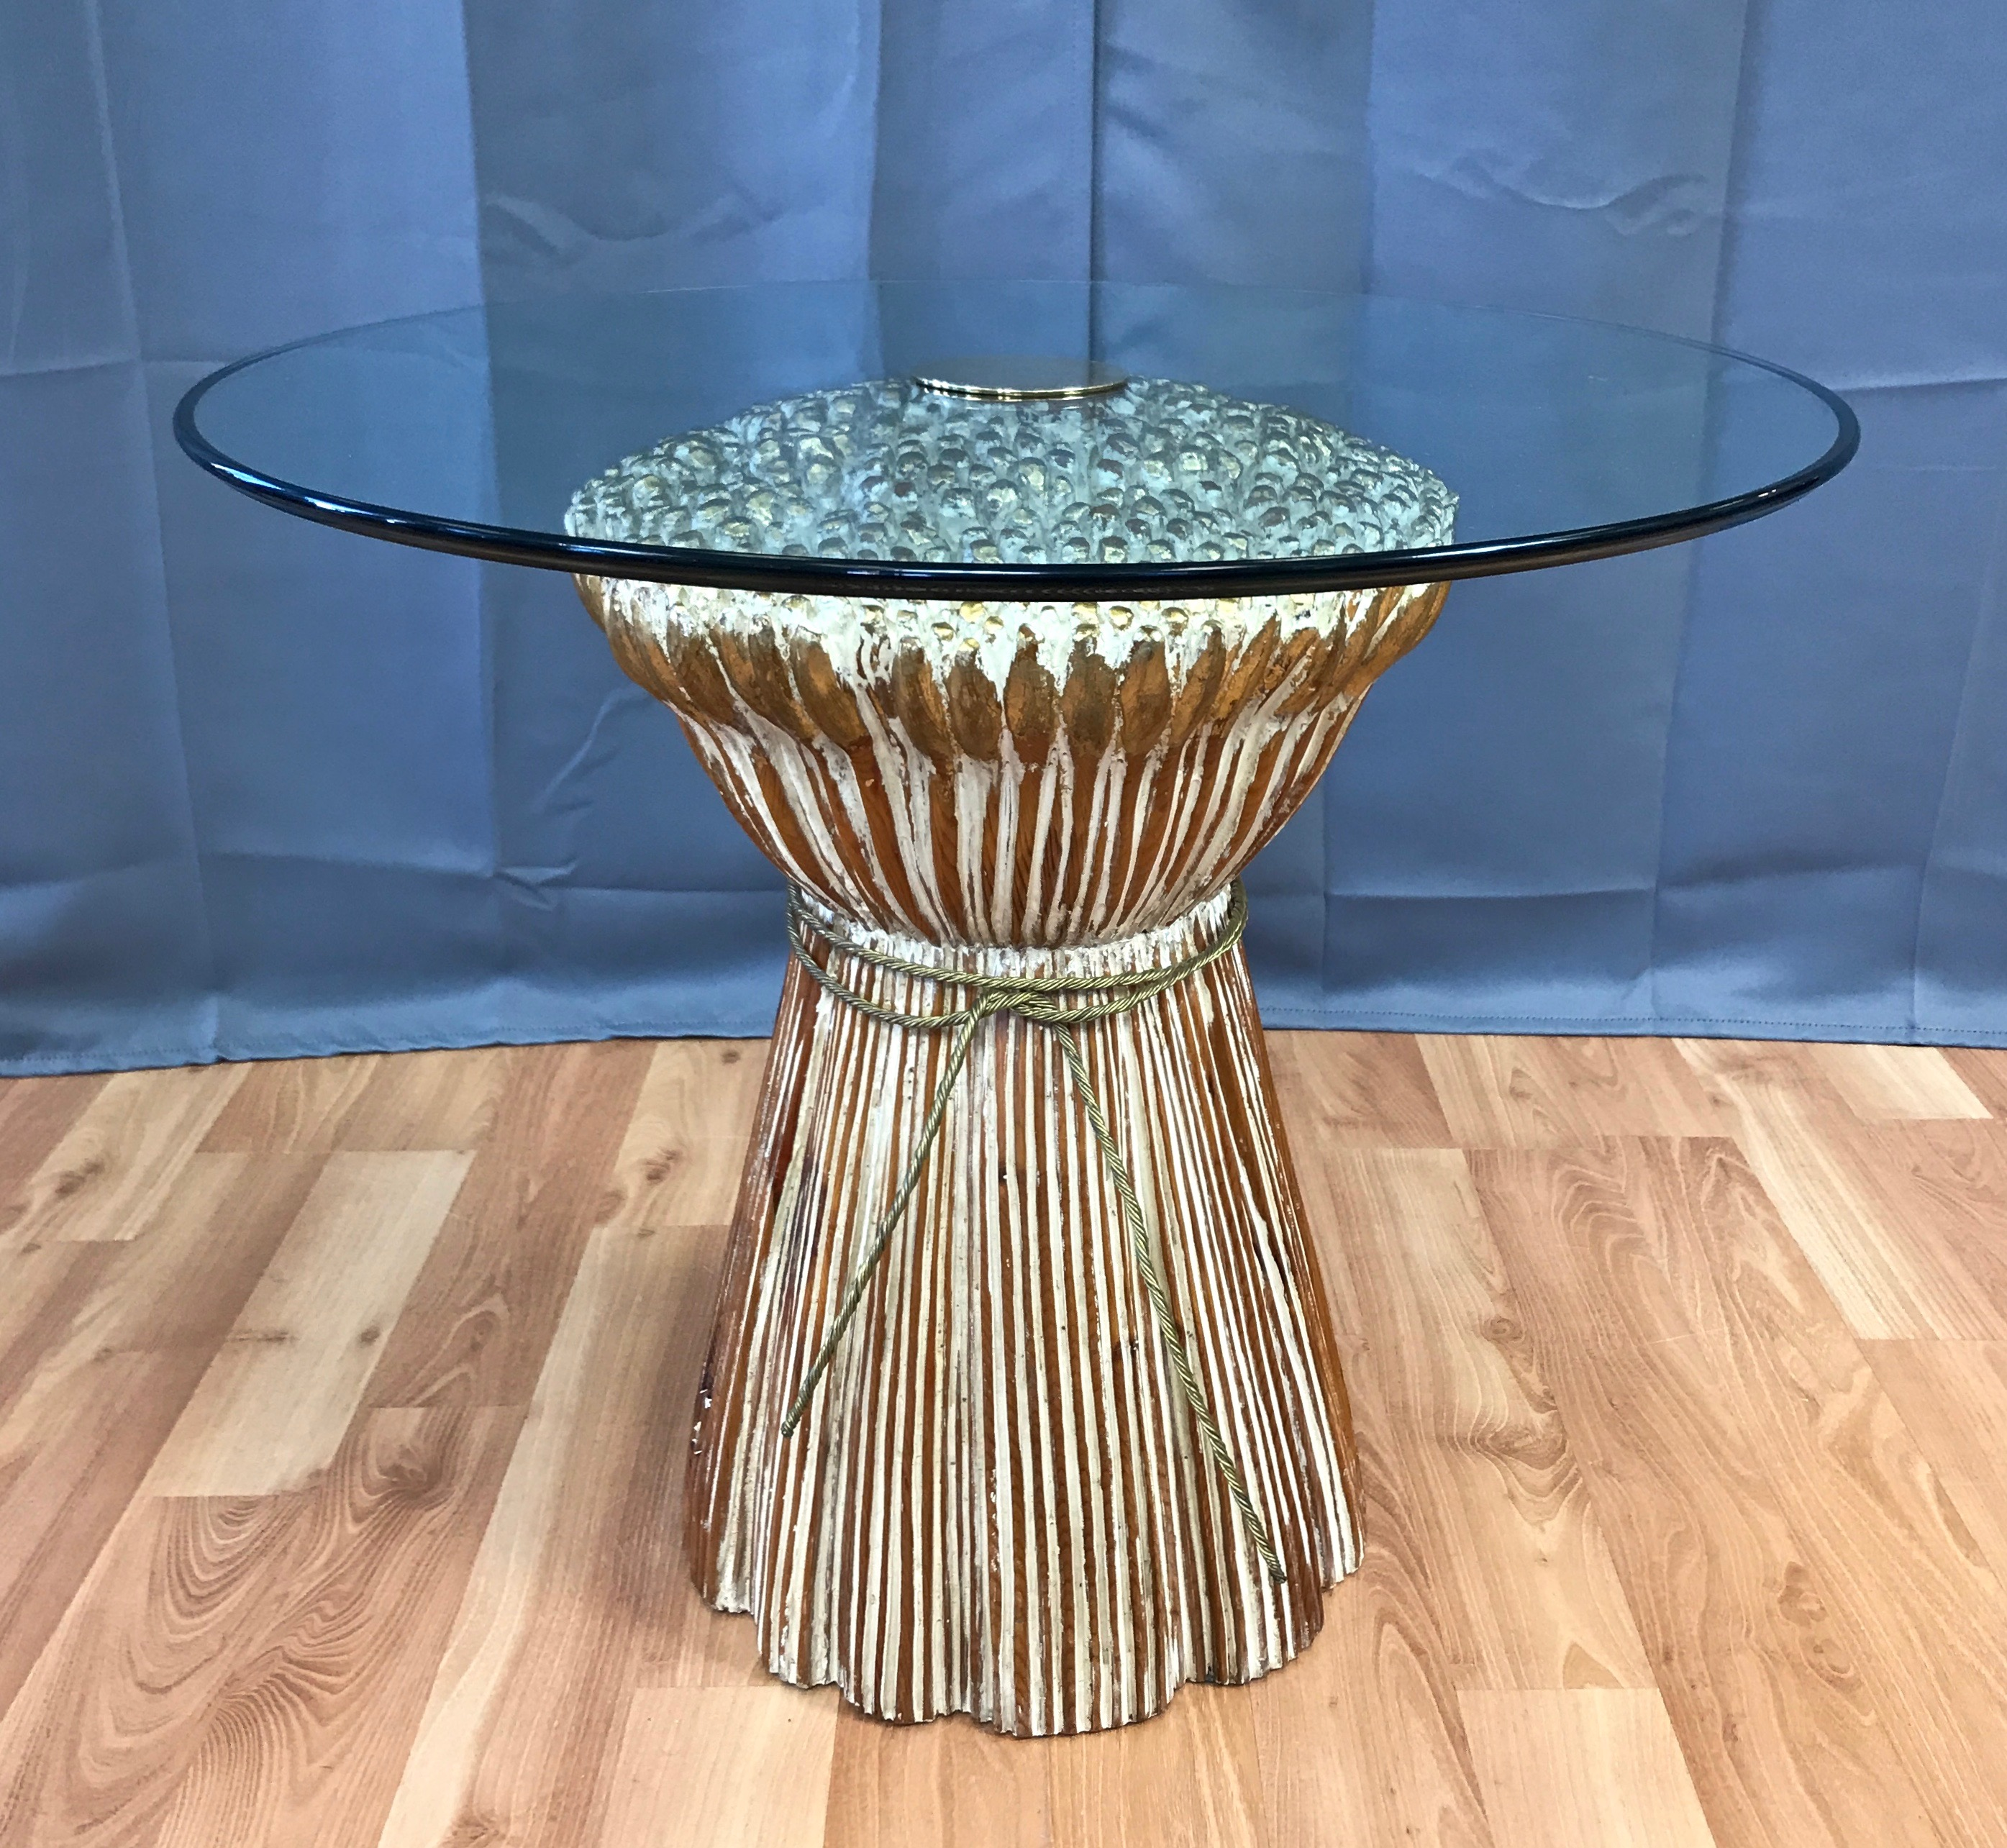 metal desk legs probably super carved wood end table idea sculptural wheat sheaf with glass top past perfect tables toronto diy rustic round easter tablecloth iron bench pottery